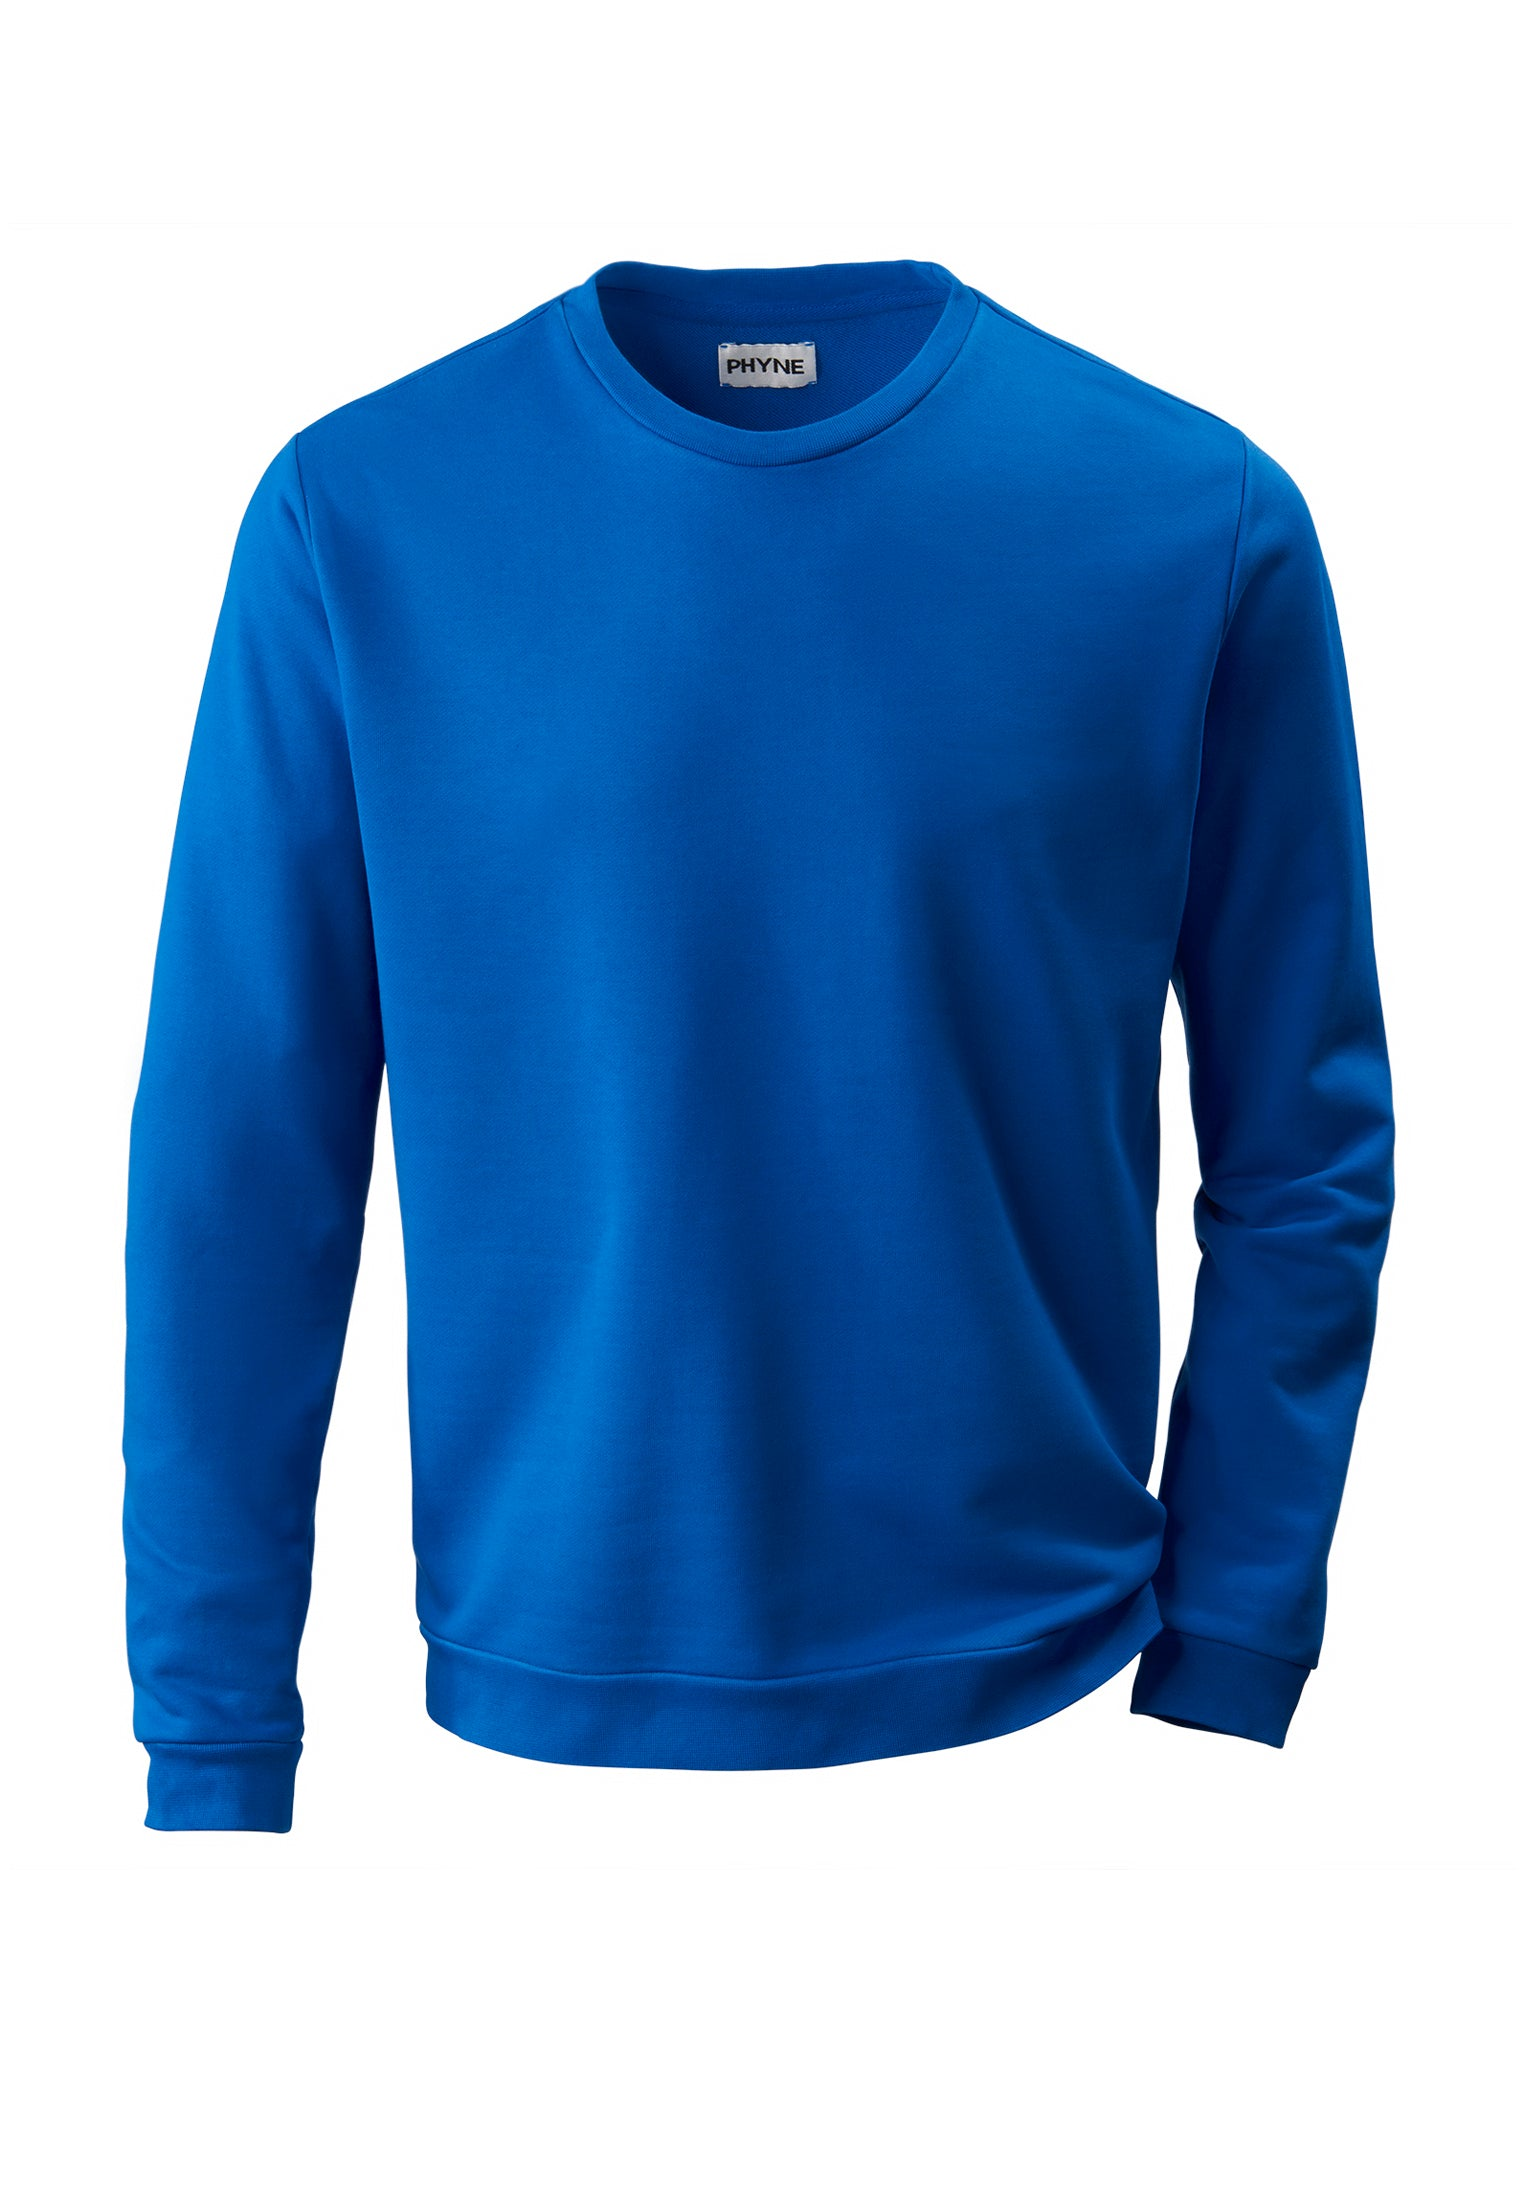 The Sweatshirt Electric Blue